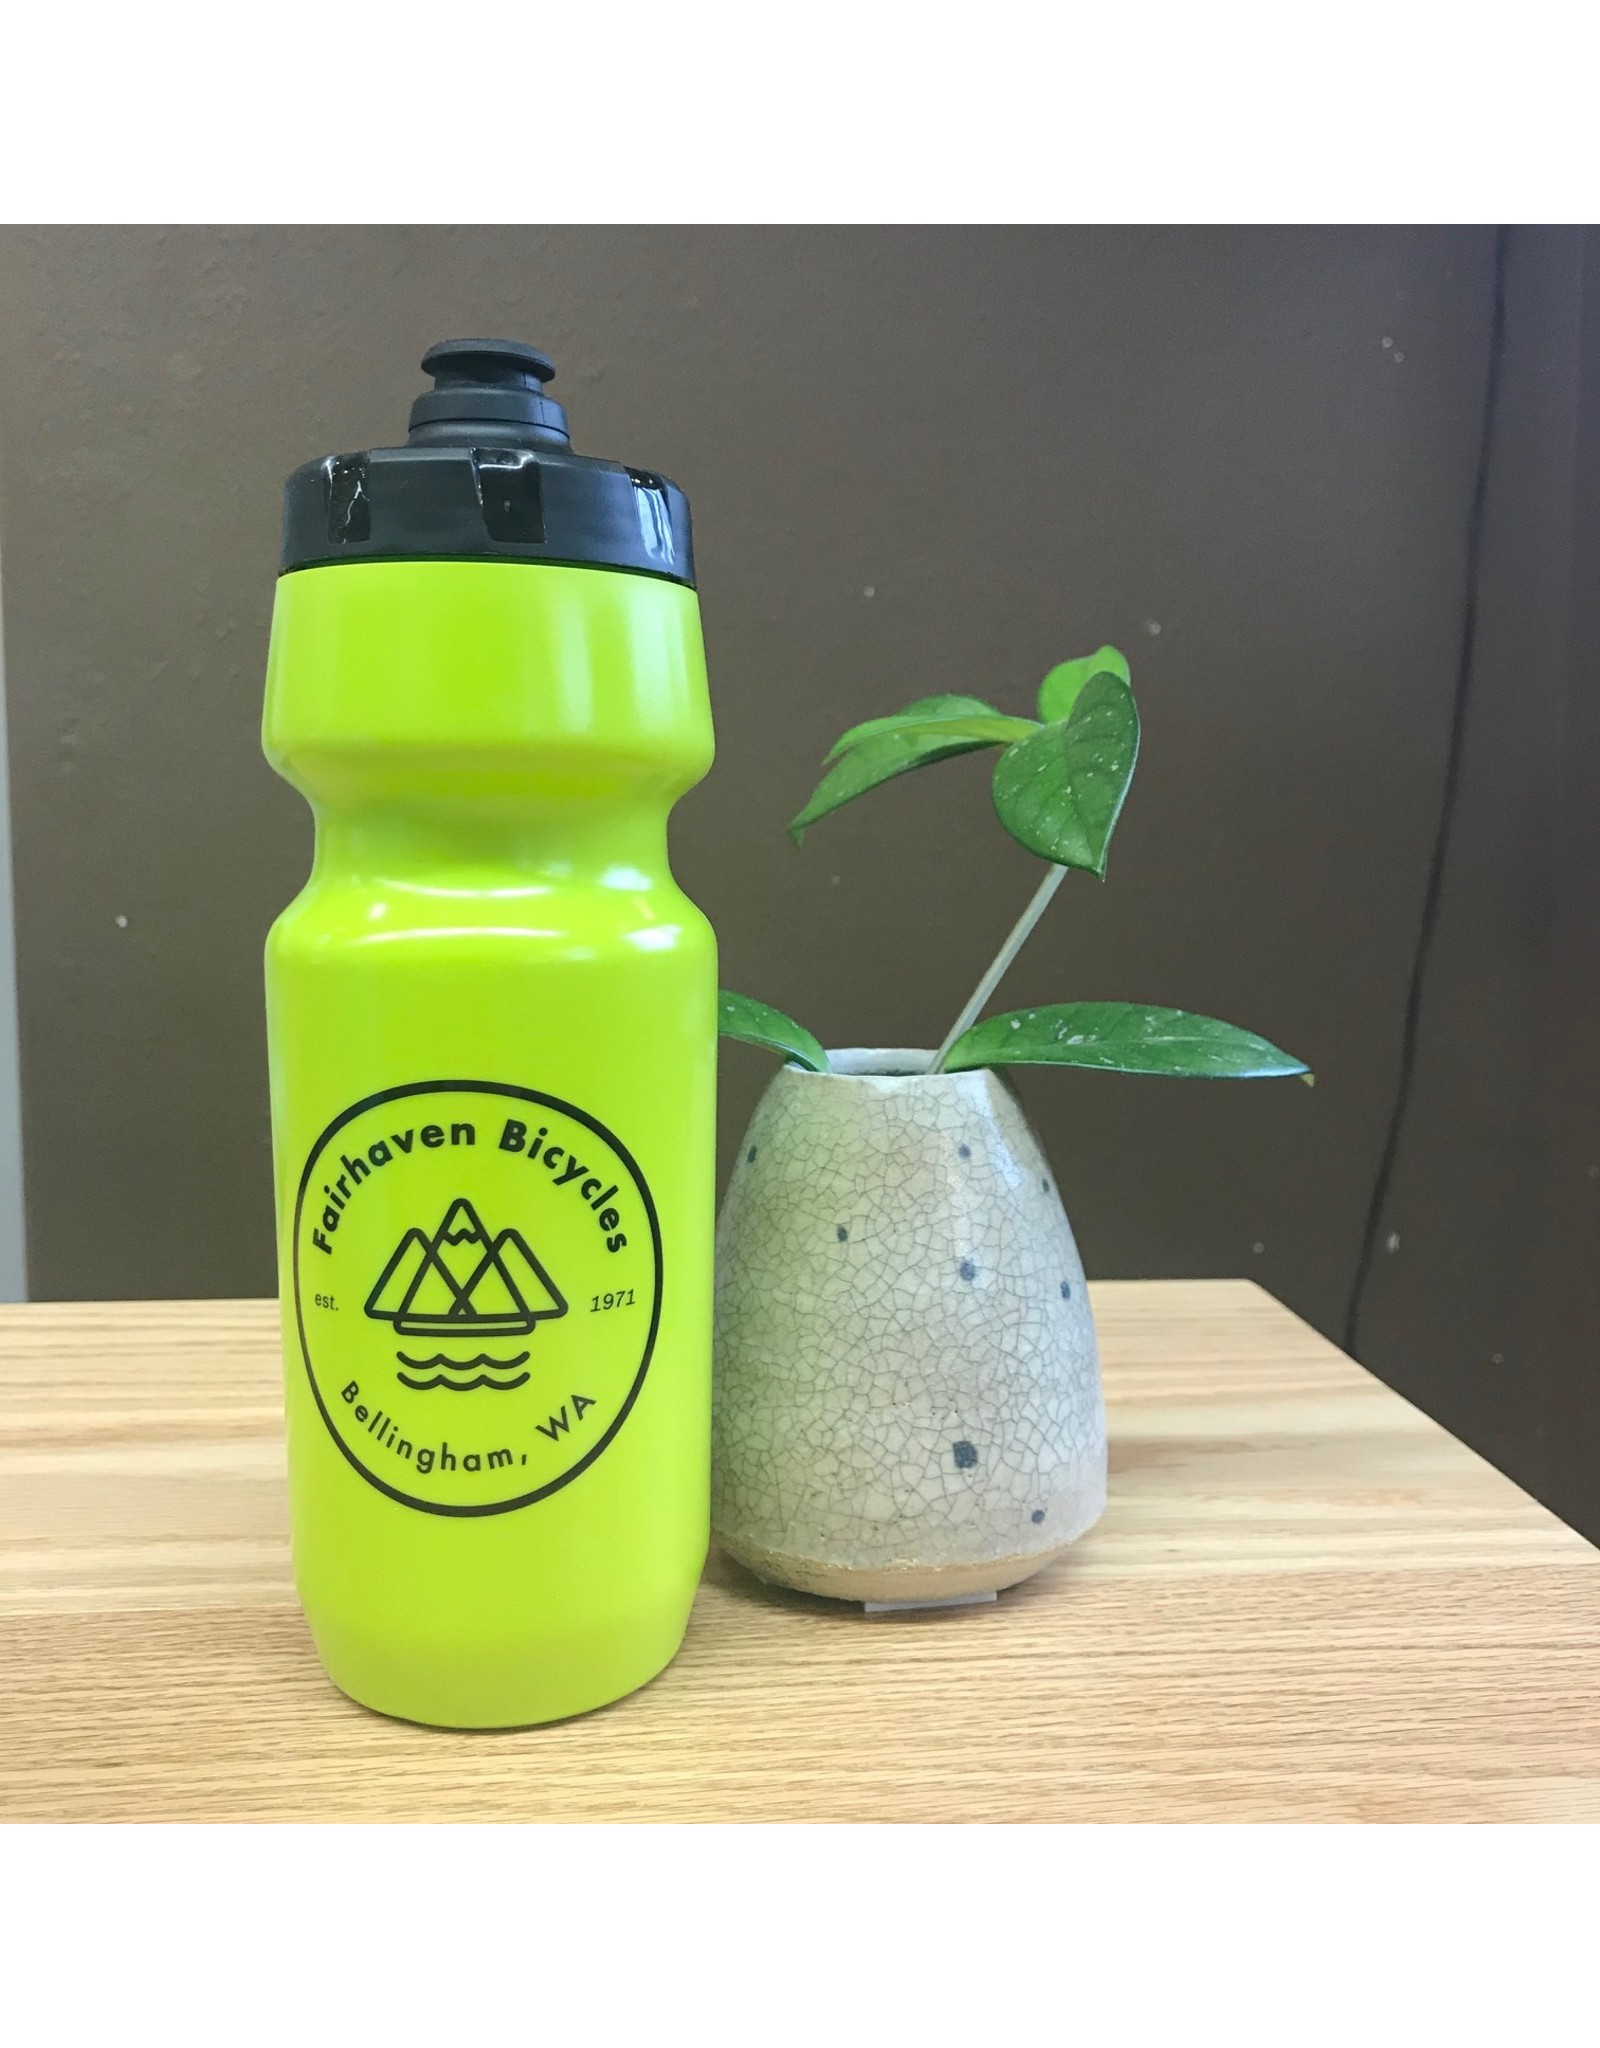 Specialized Fairhaven Bicycles Water Bottle